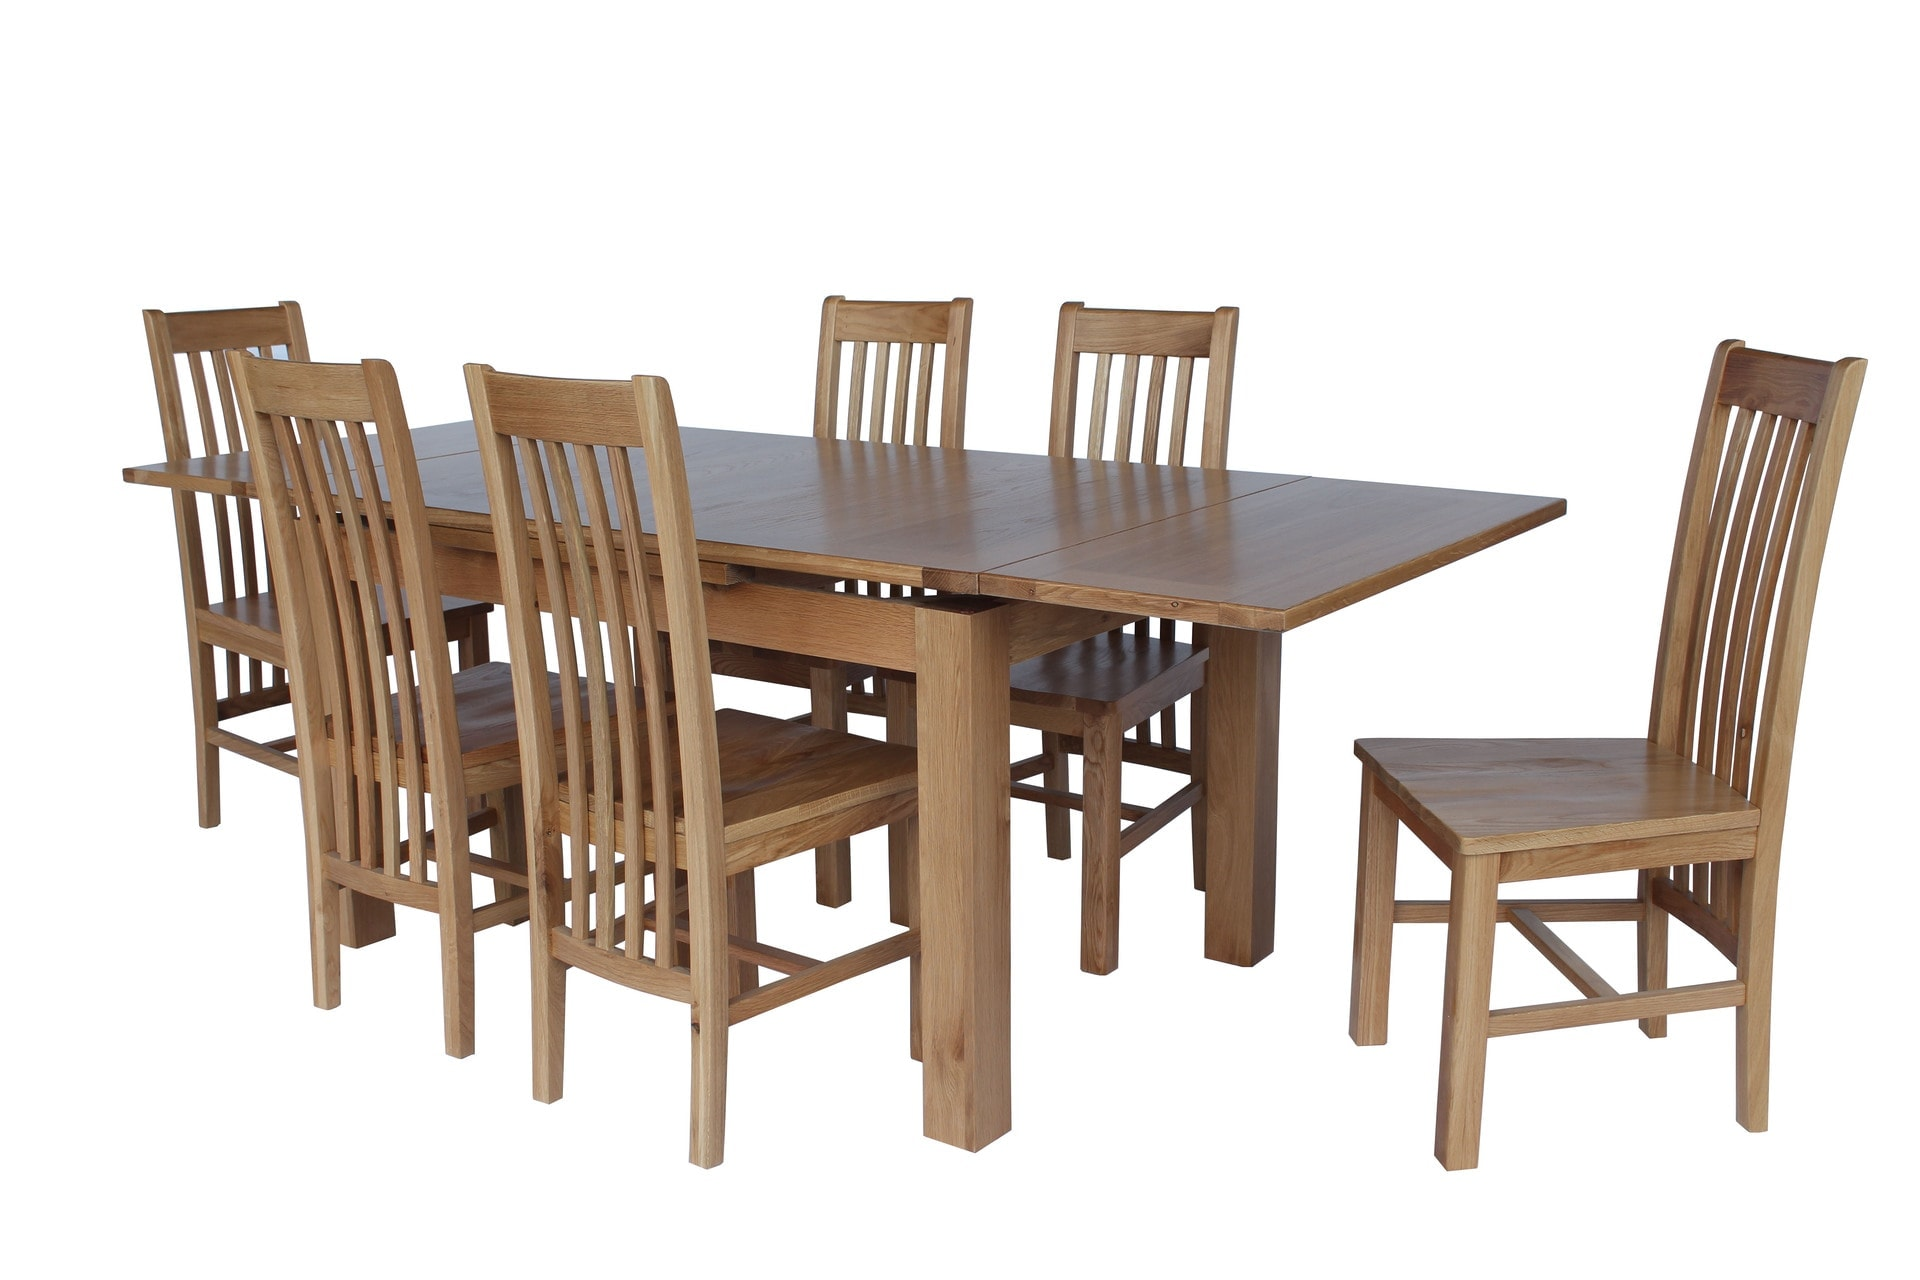 c0f96e9b93 Chair, upholstered, table, dining, dining set, sets, table, living ...